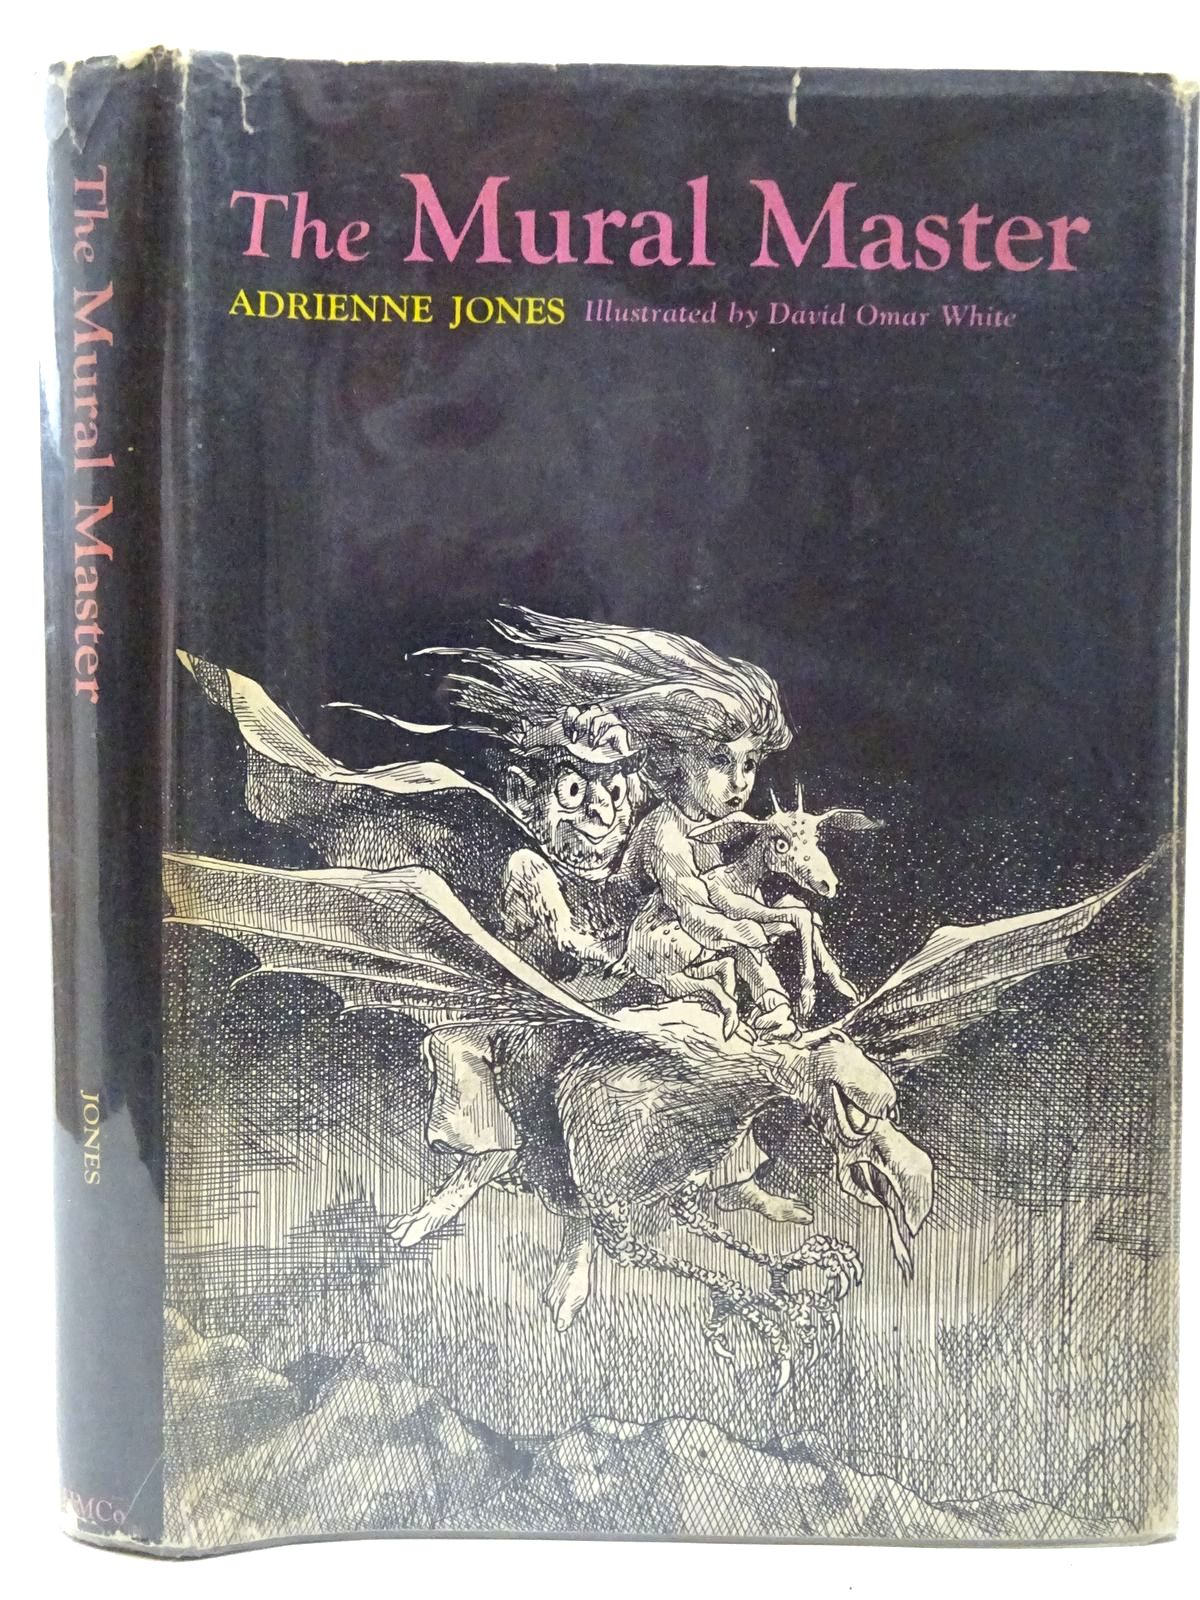 Photo of THE MURAL MASTER written by Jones, Adrienne illustrated by White, David Omar published by Houghton Mifflin Company Boston (STOCK CODE: 2126699)  for sale by Stella & Rose's Books